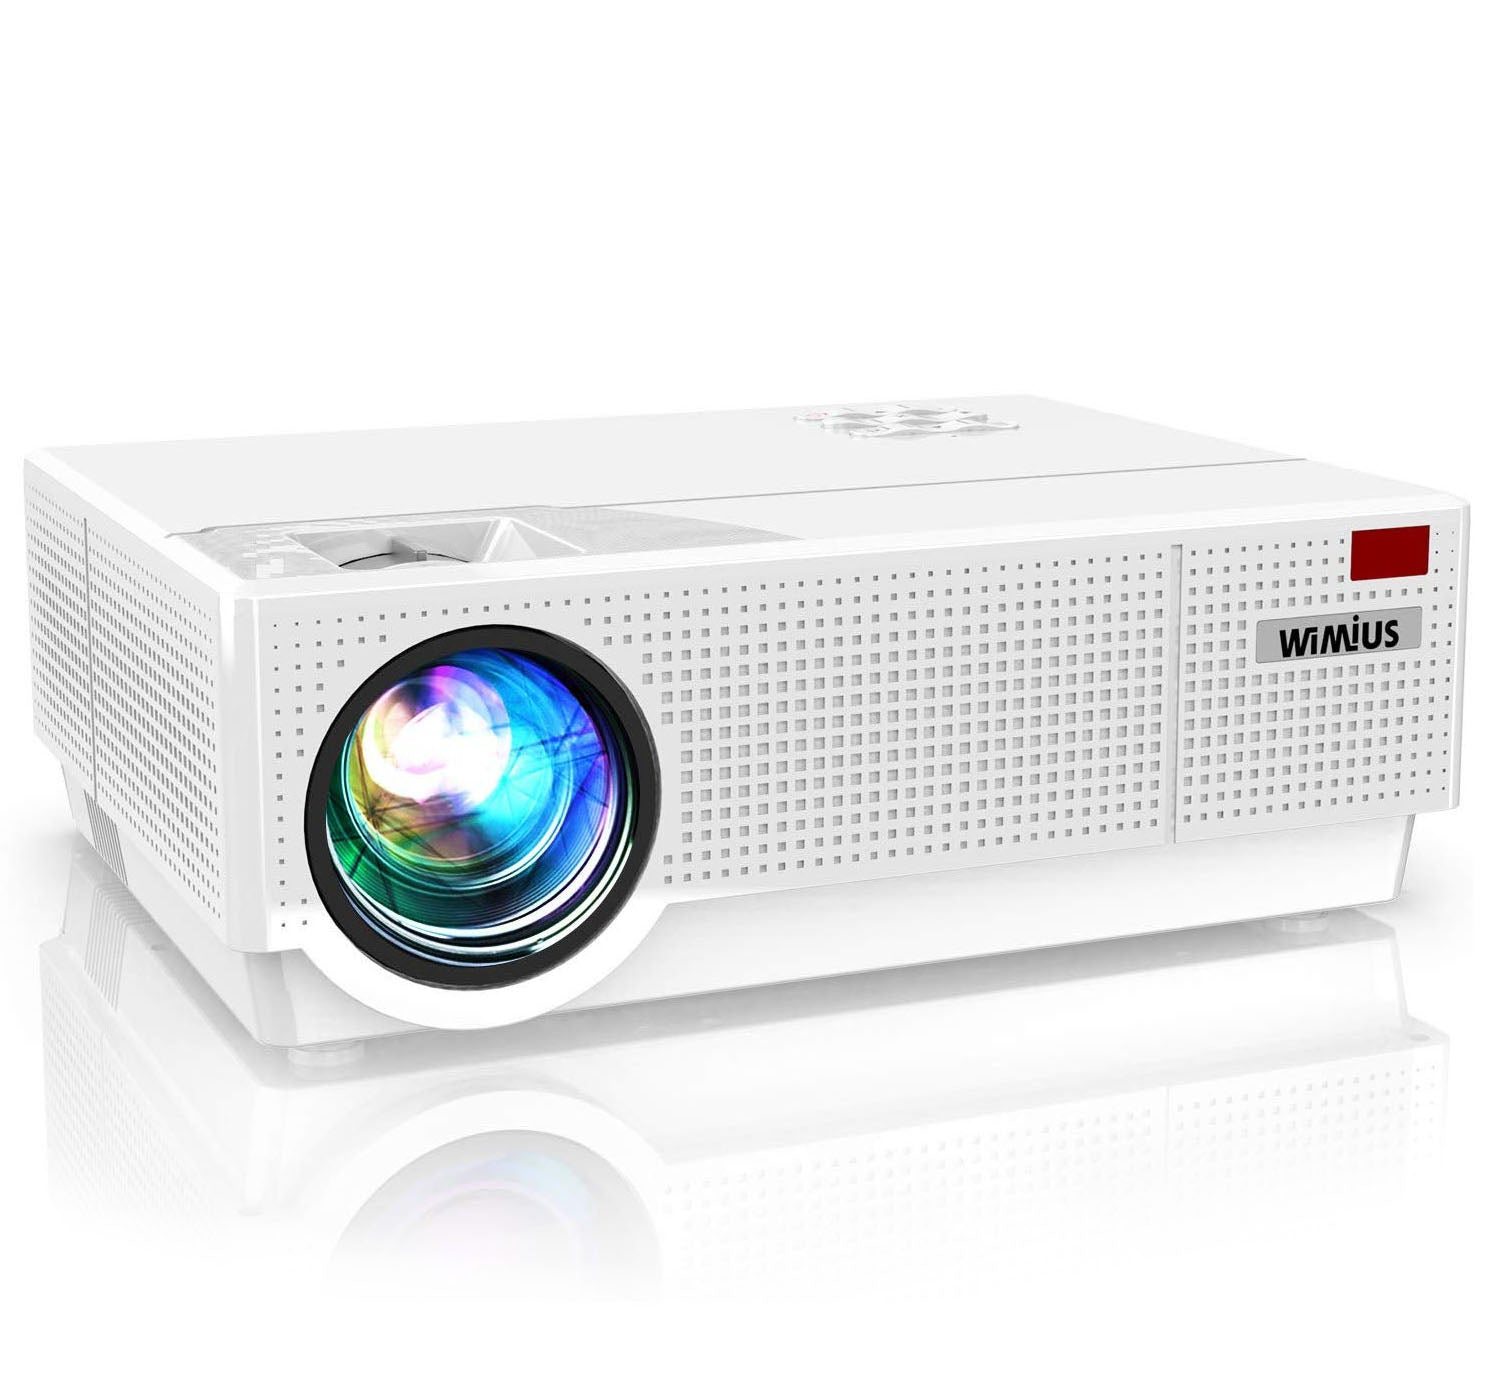 WiMiUS Video Projector - P28